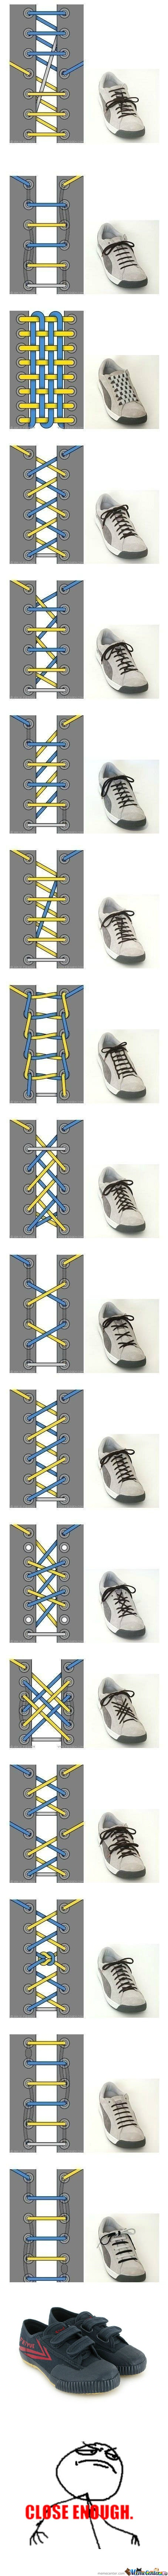 Cool Ways To Lace Shoes http://www.pinterest.com/pin